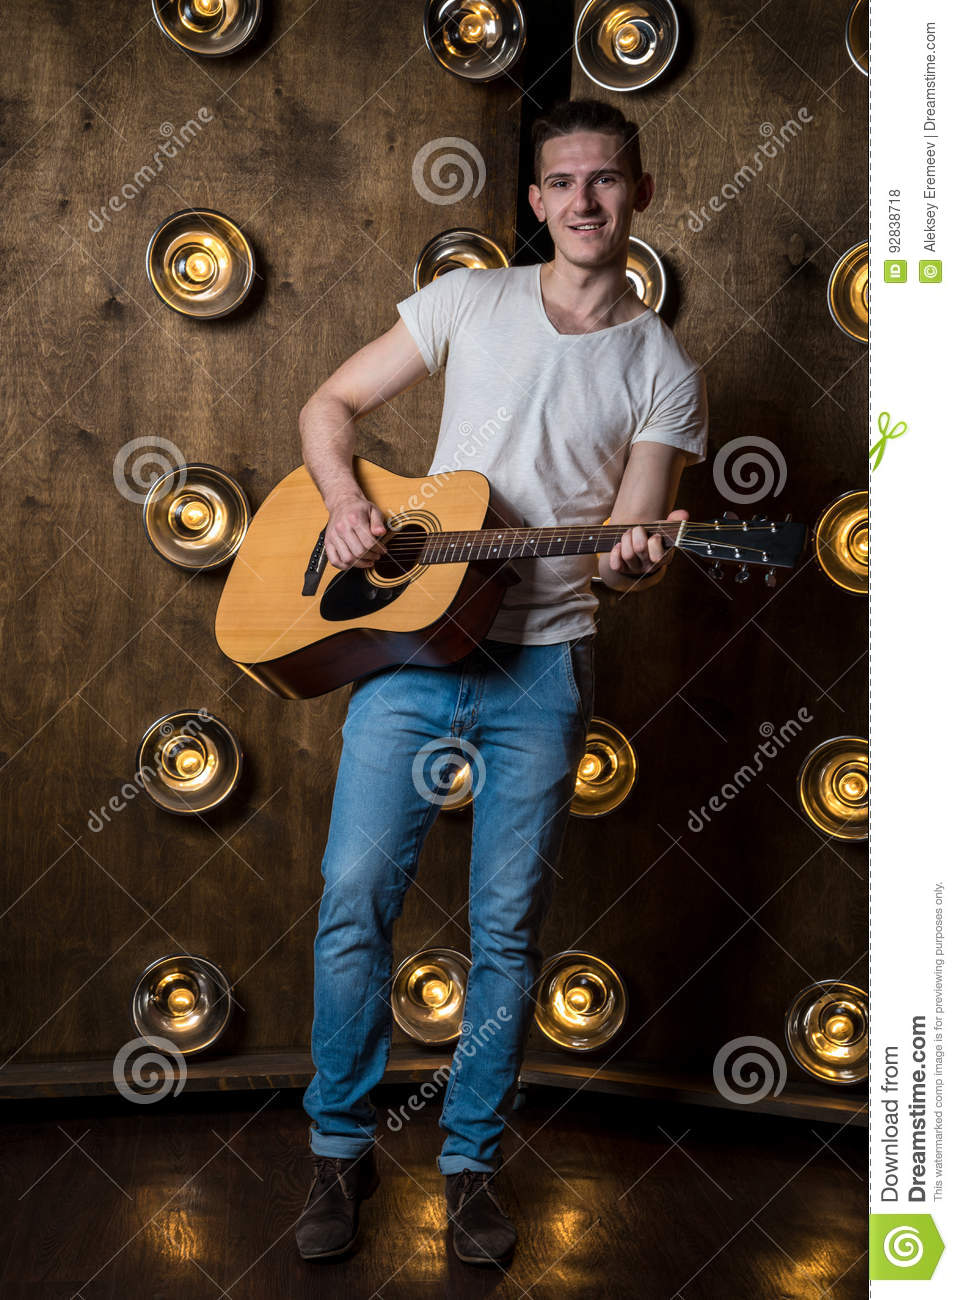 Guitarist, Music  A Young Man Plays An Acoustic Guitar On A